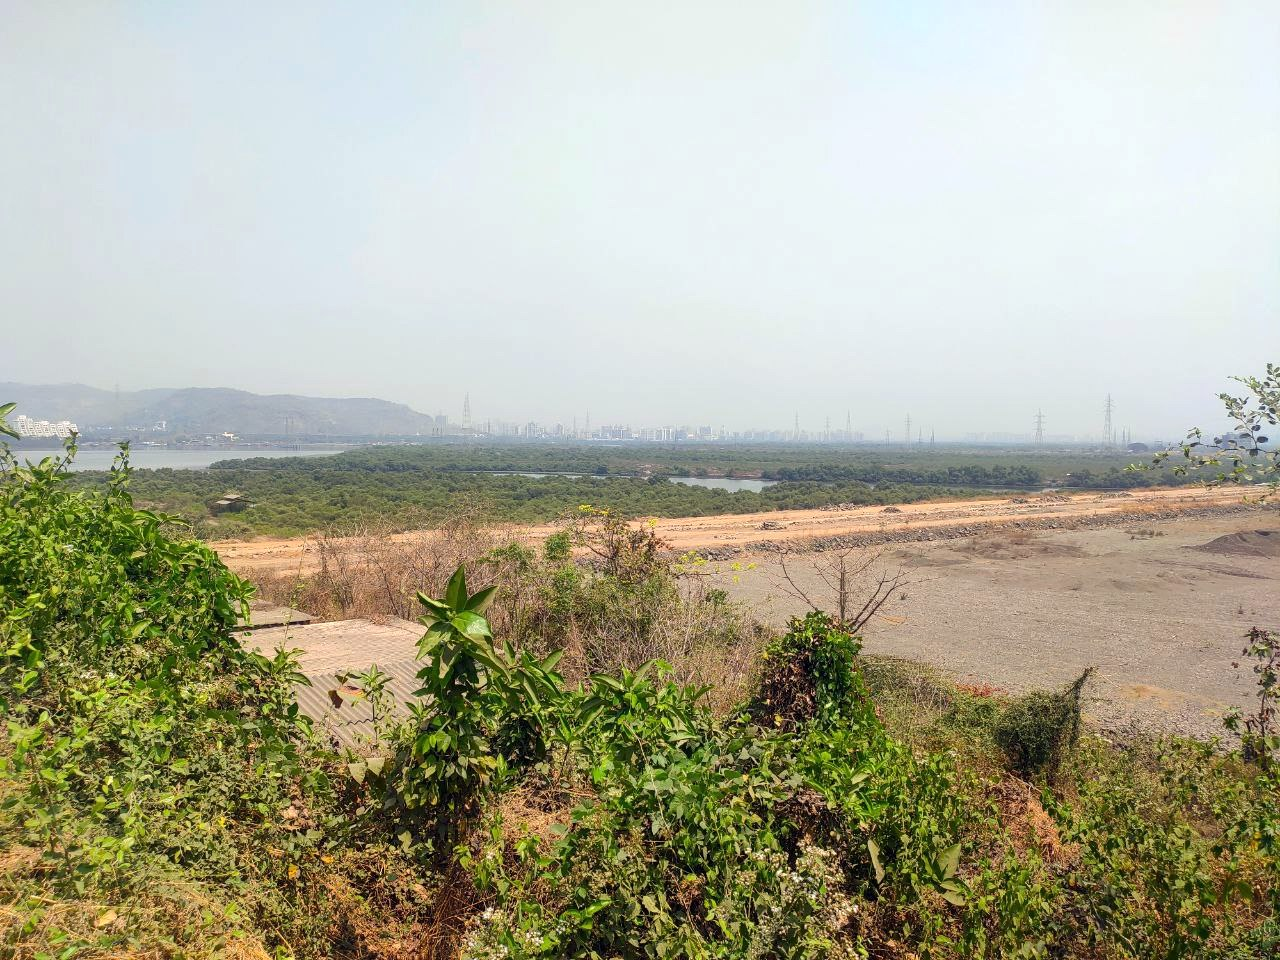 Wetlands and villages flattened and filled in. Photo Shiva Thorat